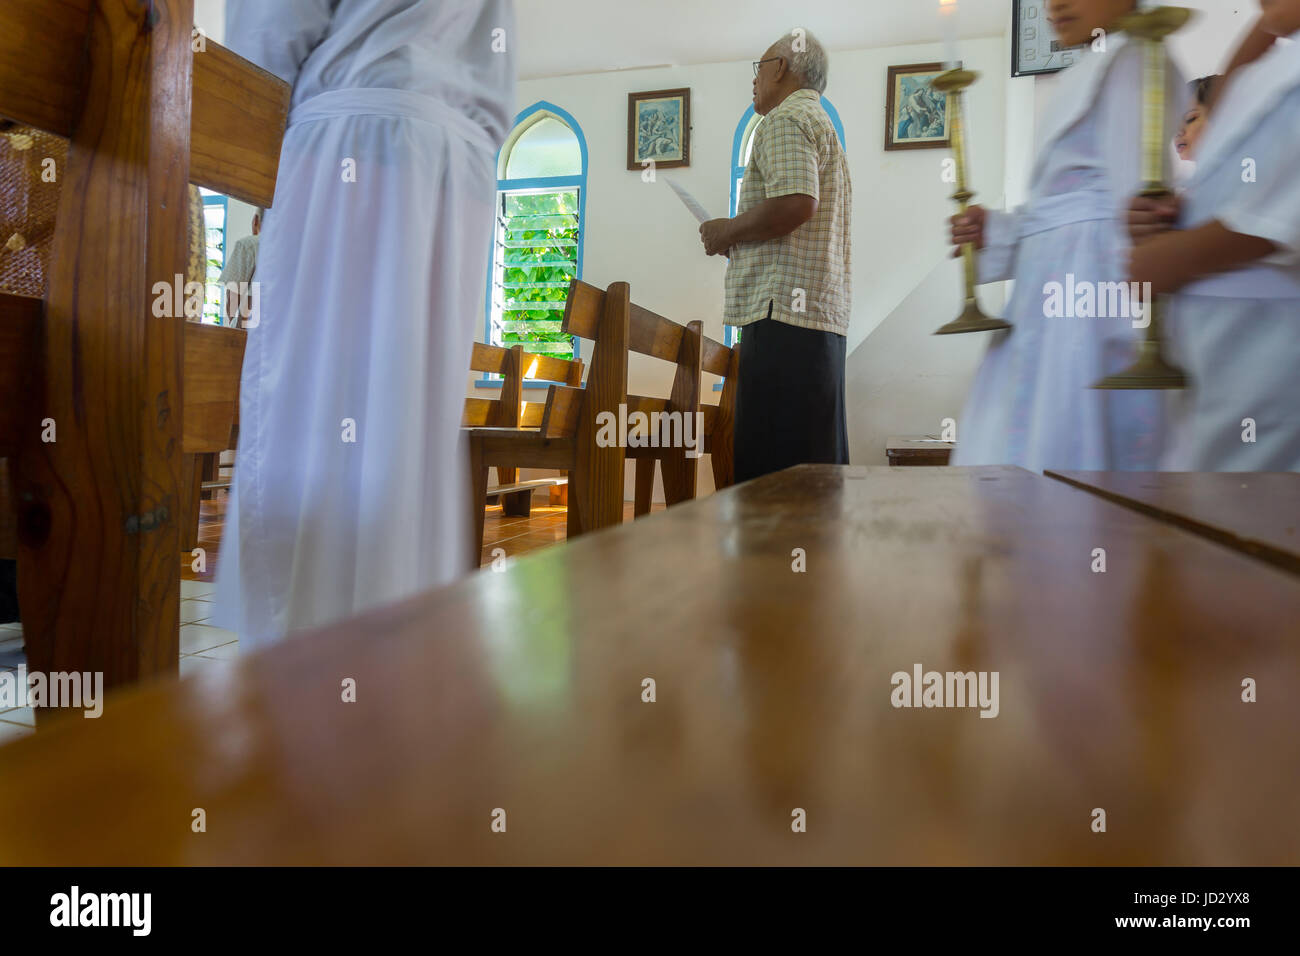 Low point of view indoors of Pacific Island man inside church holding hum sheet signs while procession enters Saint - Stock Image